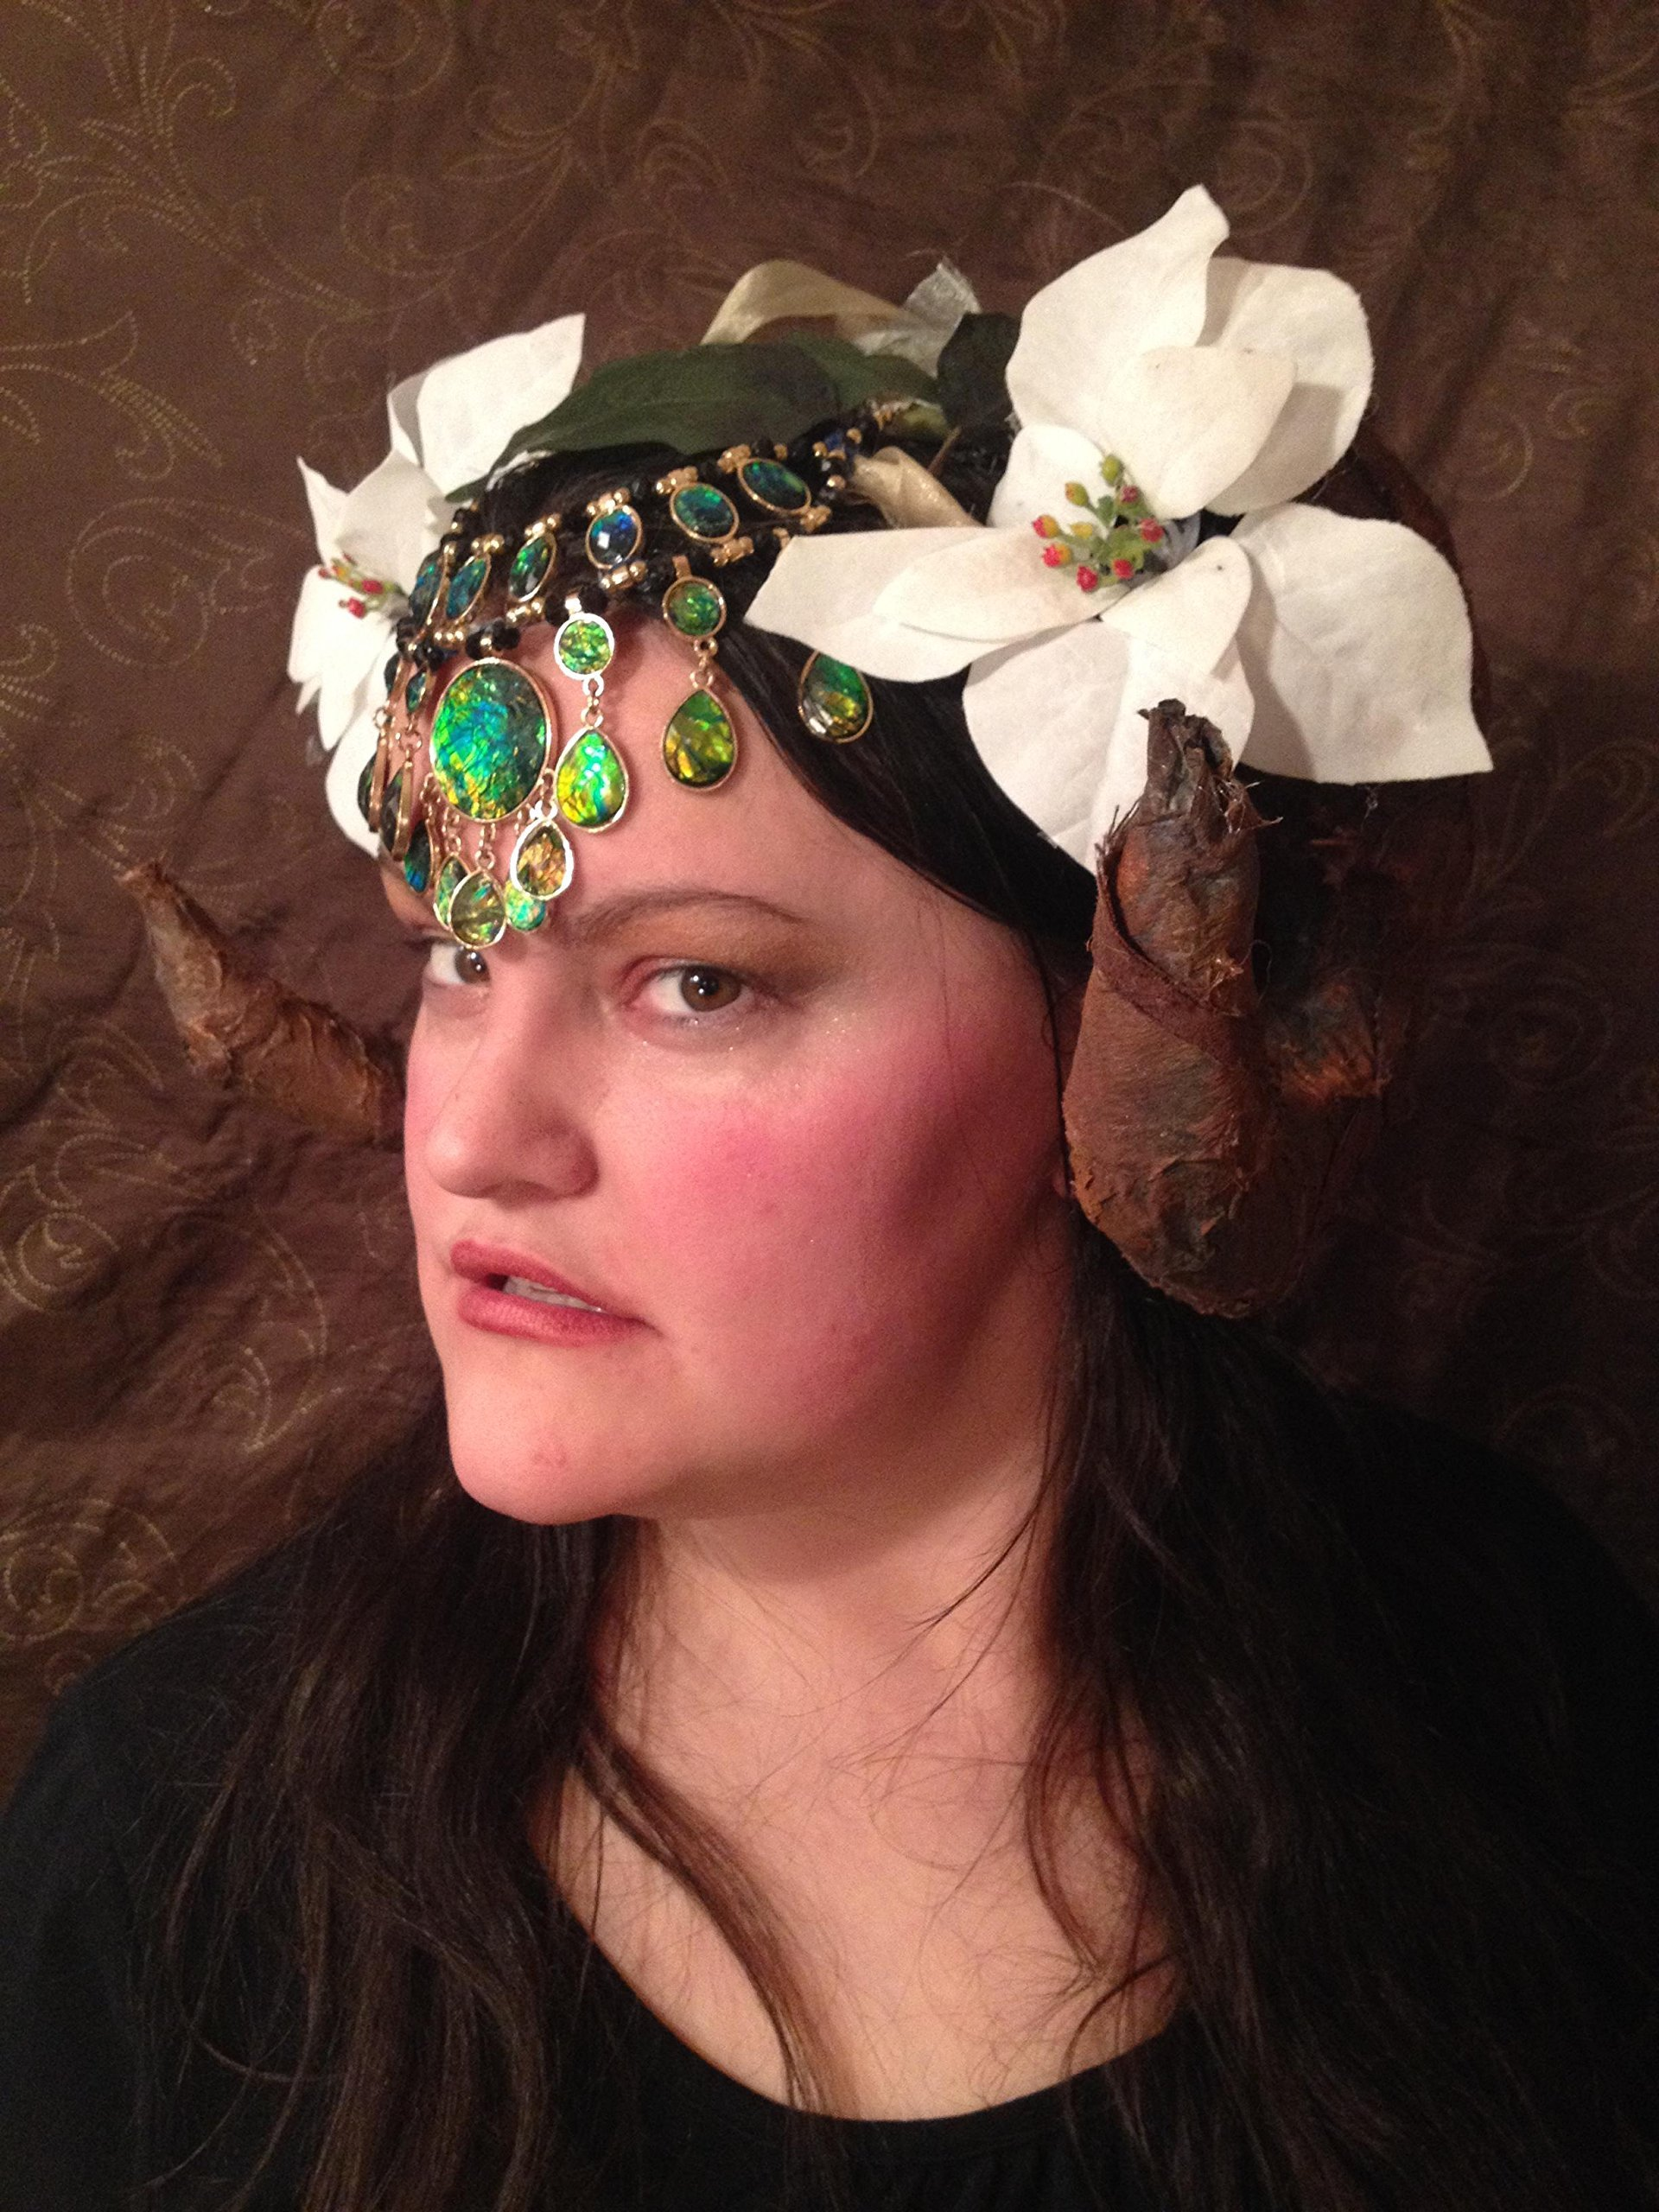 beltane flower goddess headpiece headdress crown fairy may queen celtic festival pagan fairy jewel festival opal horn forest woodland magic